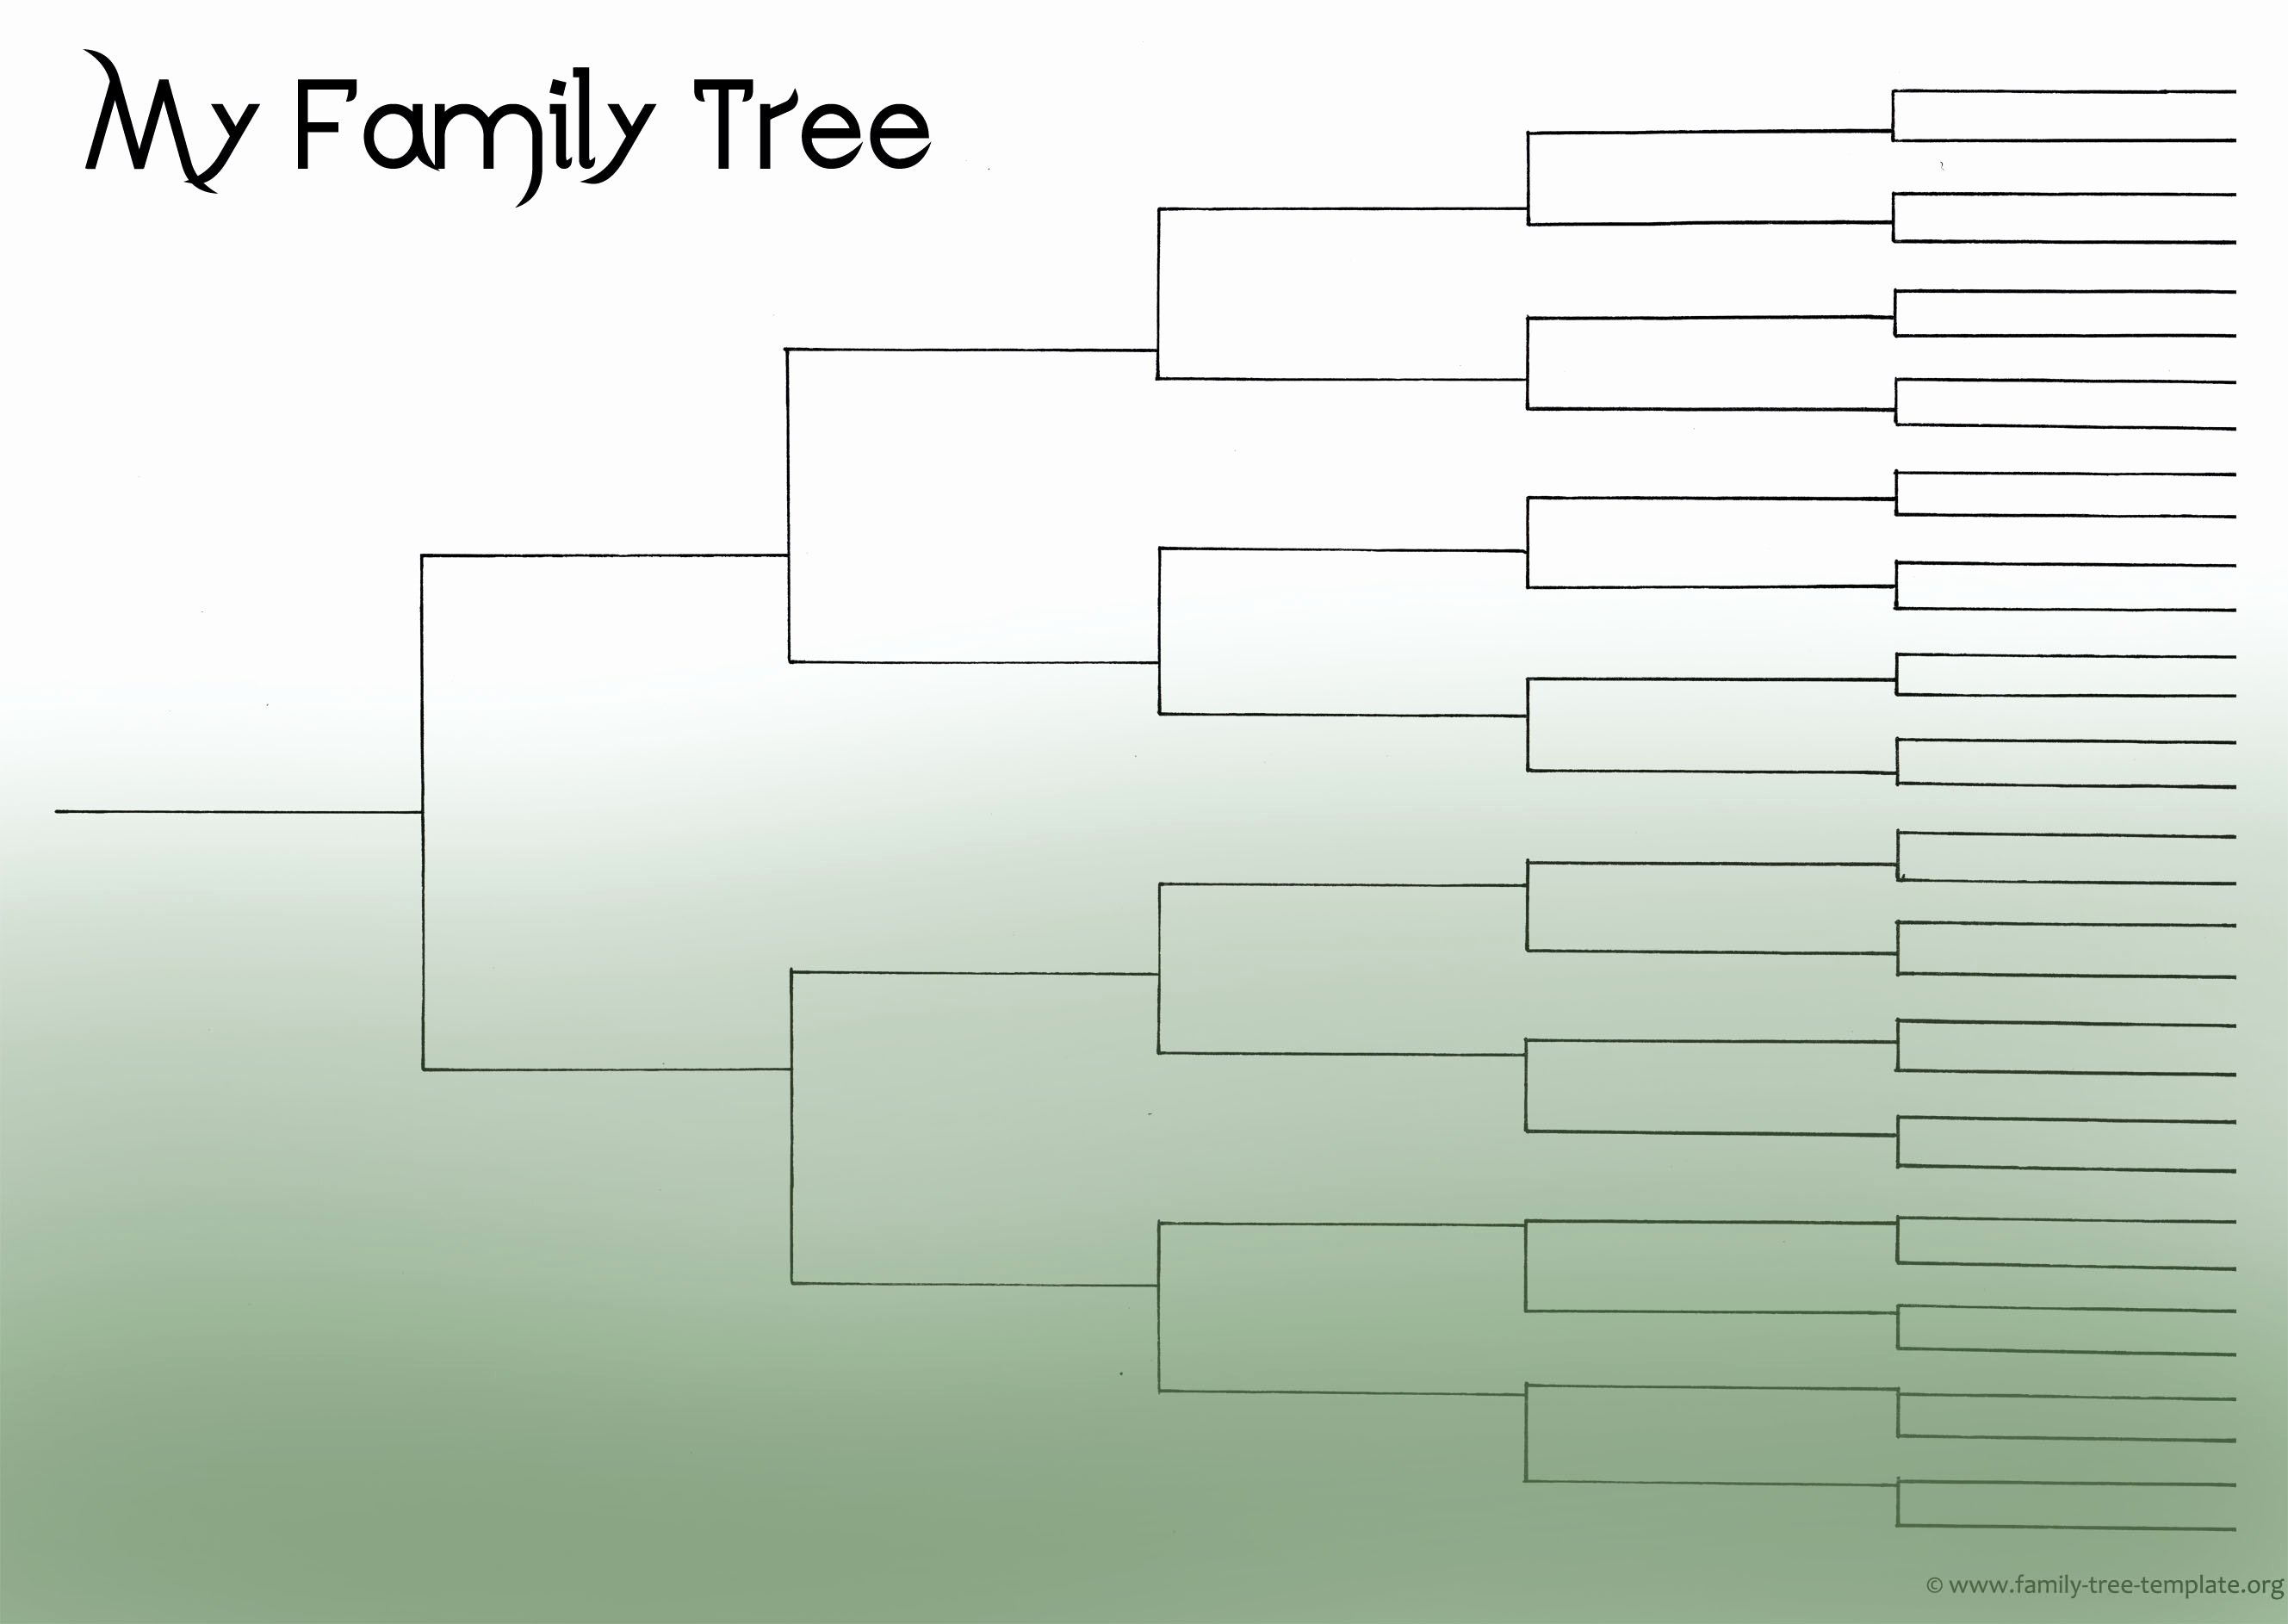 Family Tree Template Free Editable Fresh Blank Family Tree Template